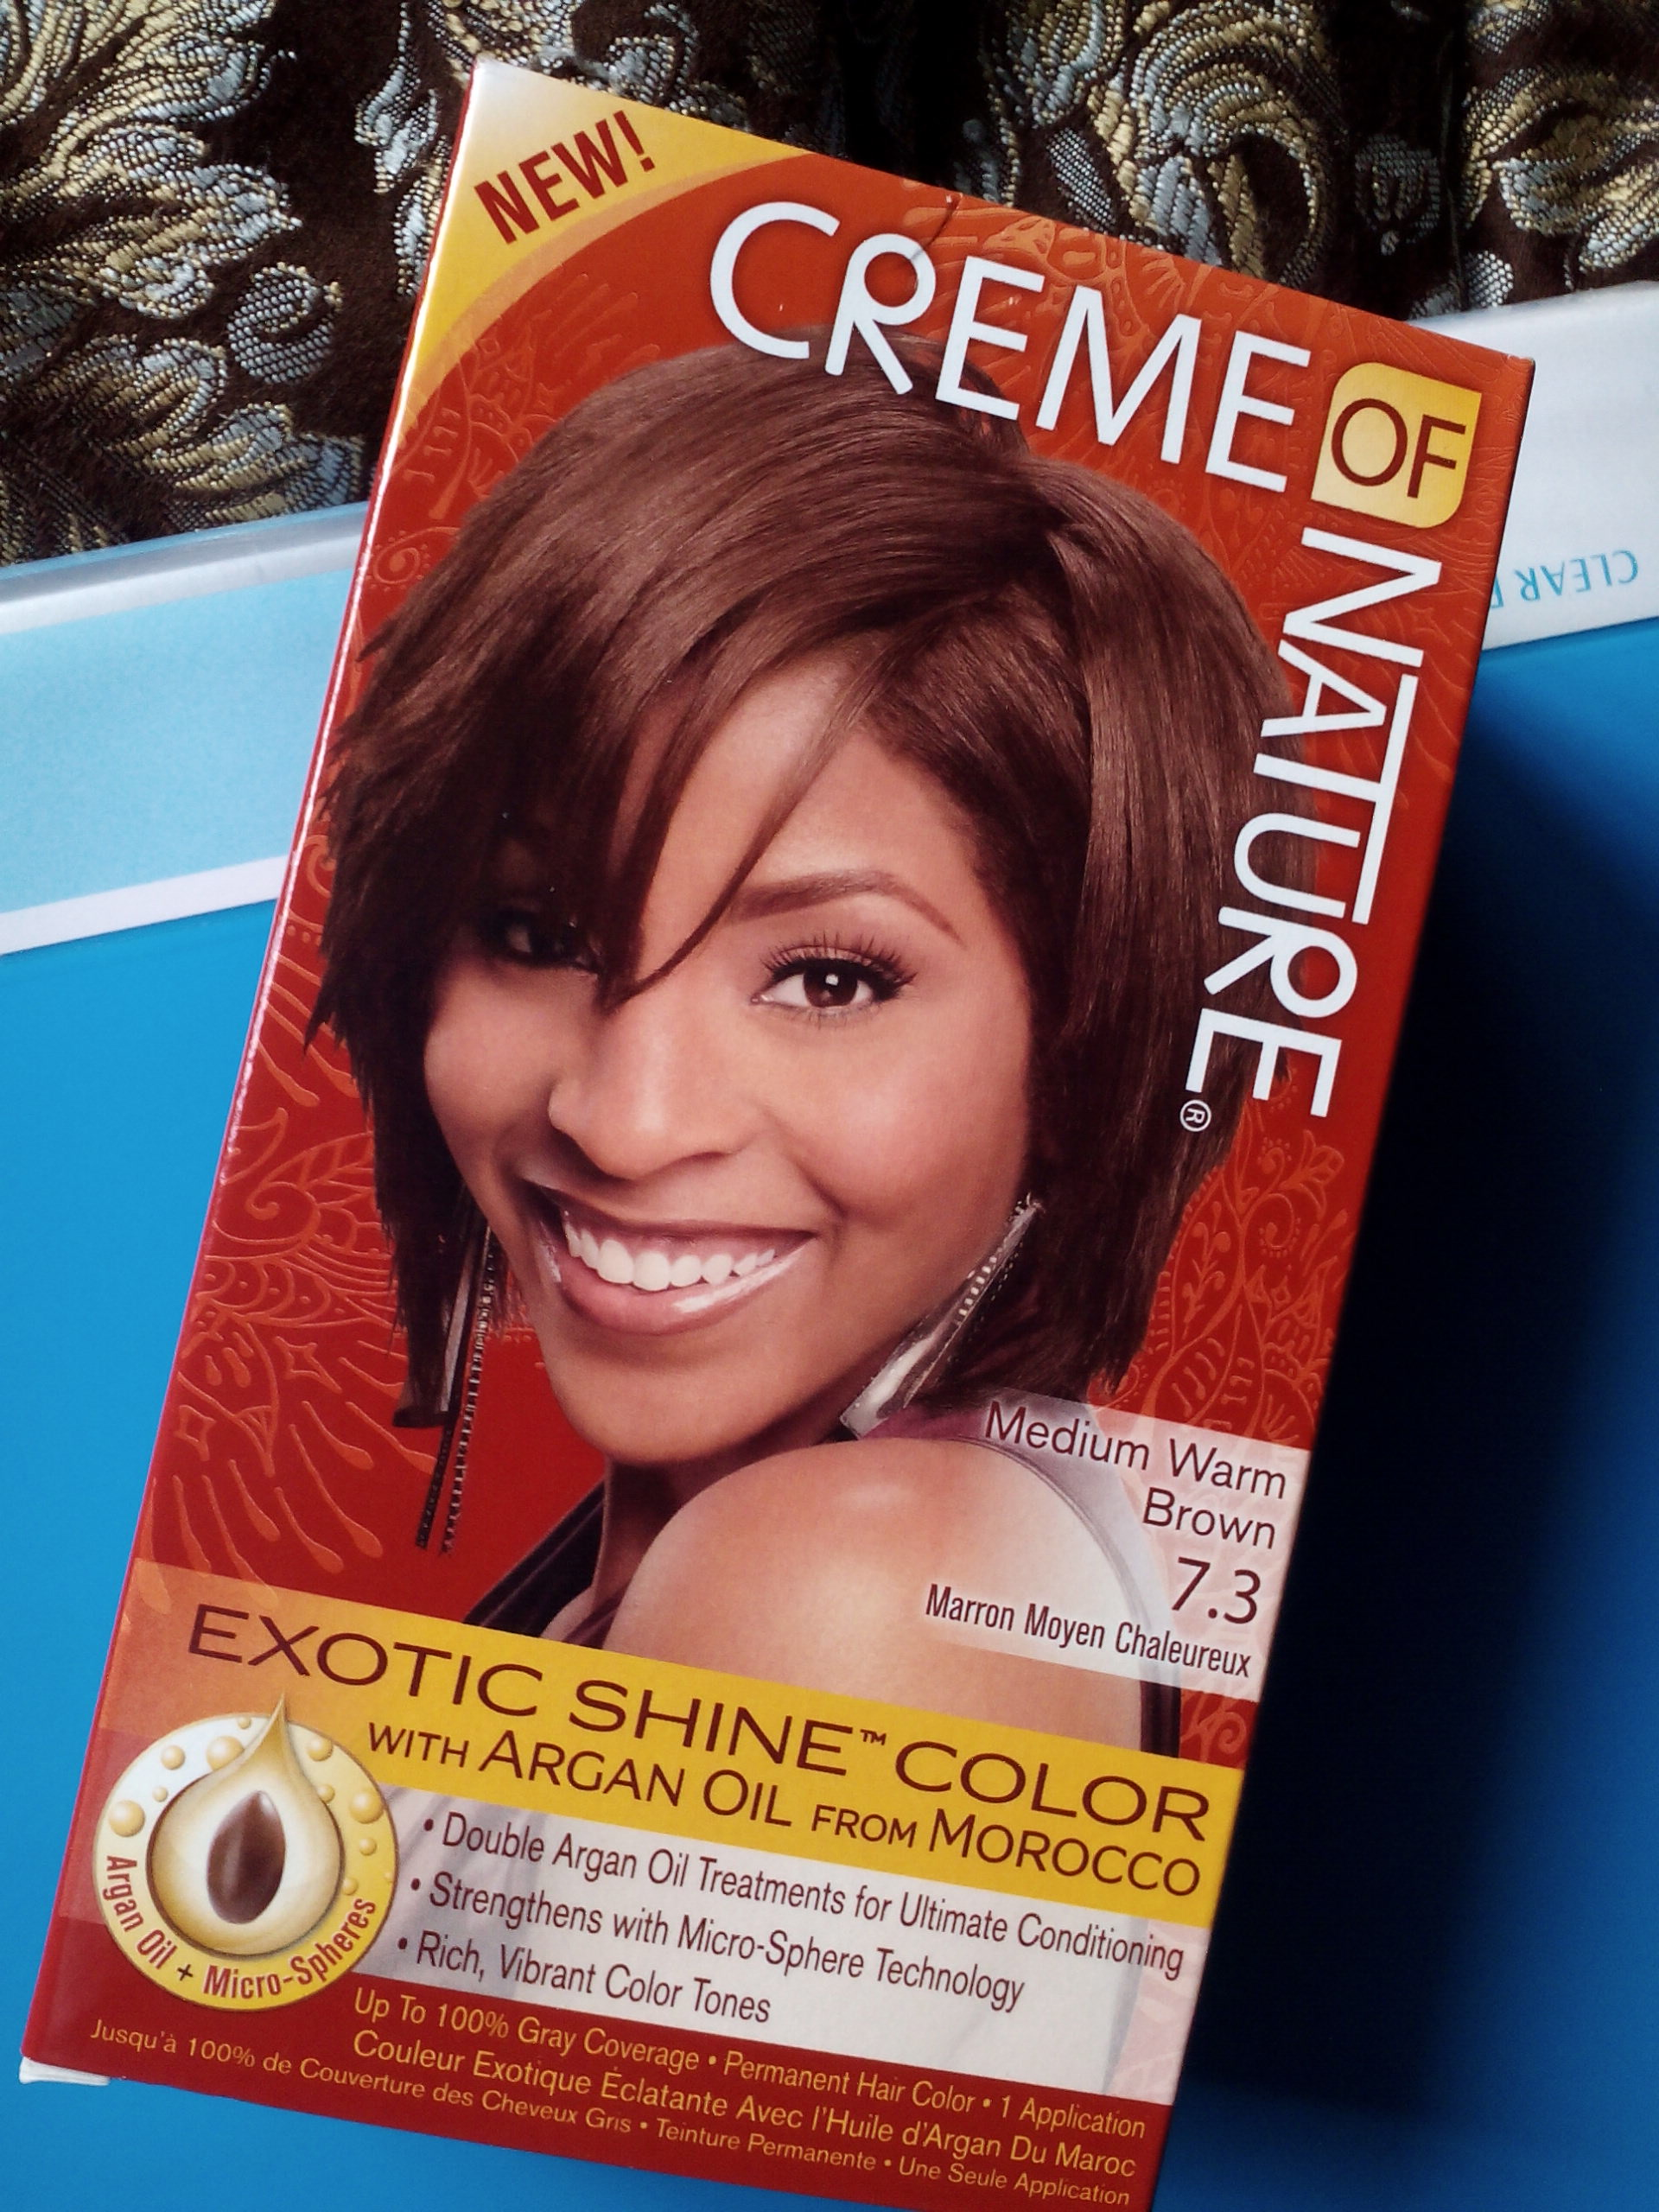 Creative Rich Brown Hair Color Policies Totaltravel